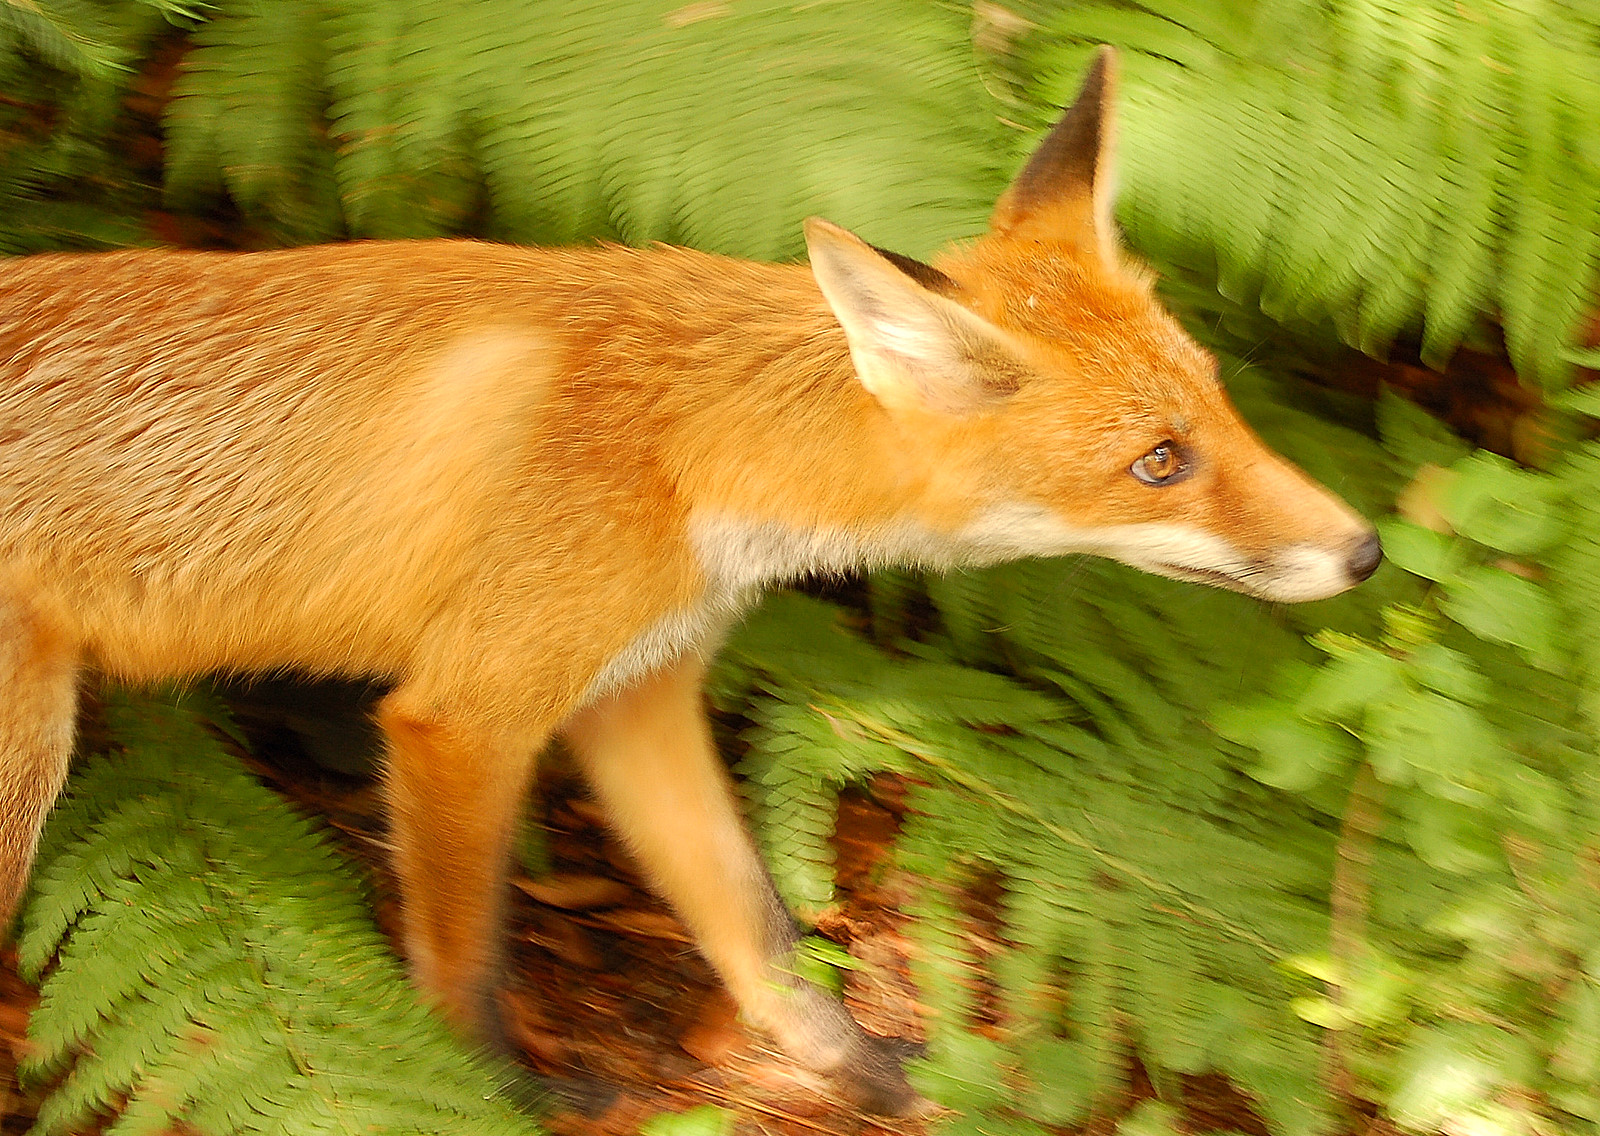 A European red fox (V. vulpes crucigera) in an inquisitive posture. Photo taken in July 2006 at Botanic Garden of the Biology Faculty of Warsaw University in the center of Warsaw.